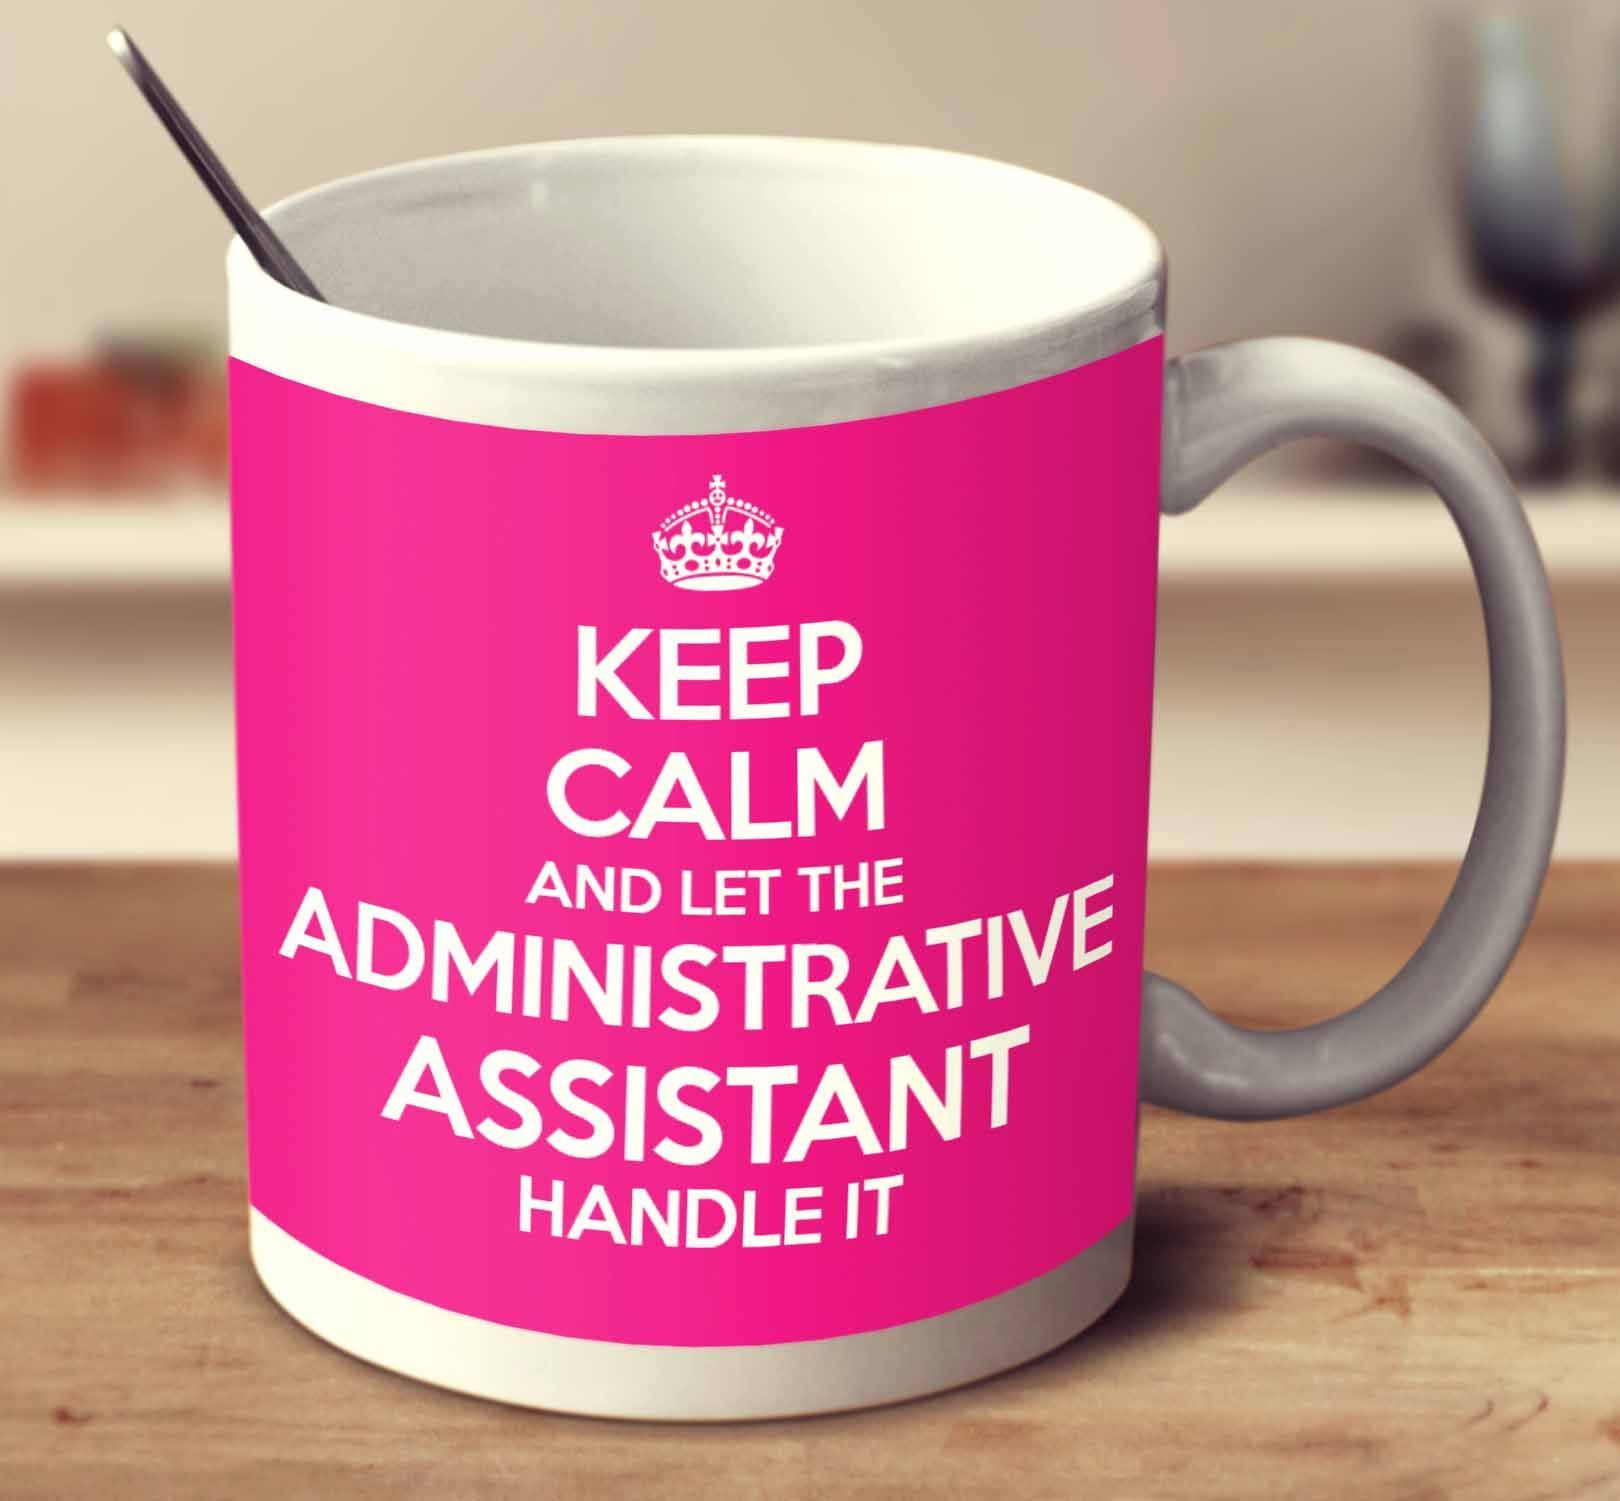 cover letter samples for administrative assistants%0A Keep Calm And Let The Administrative Assistant Handle It